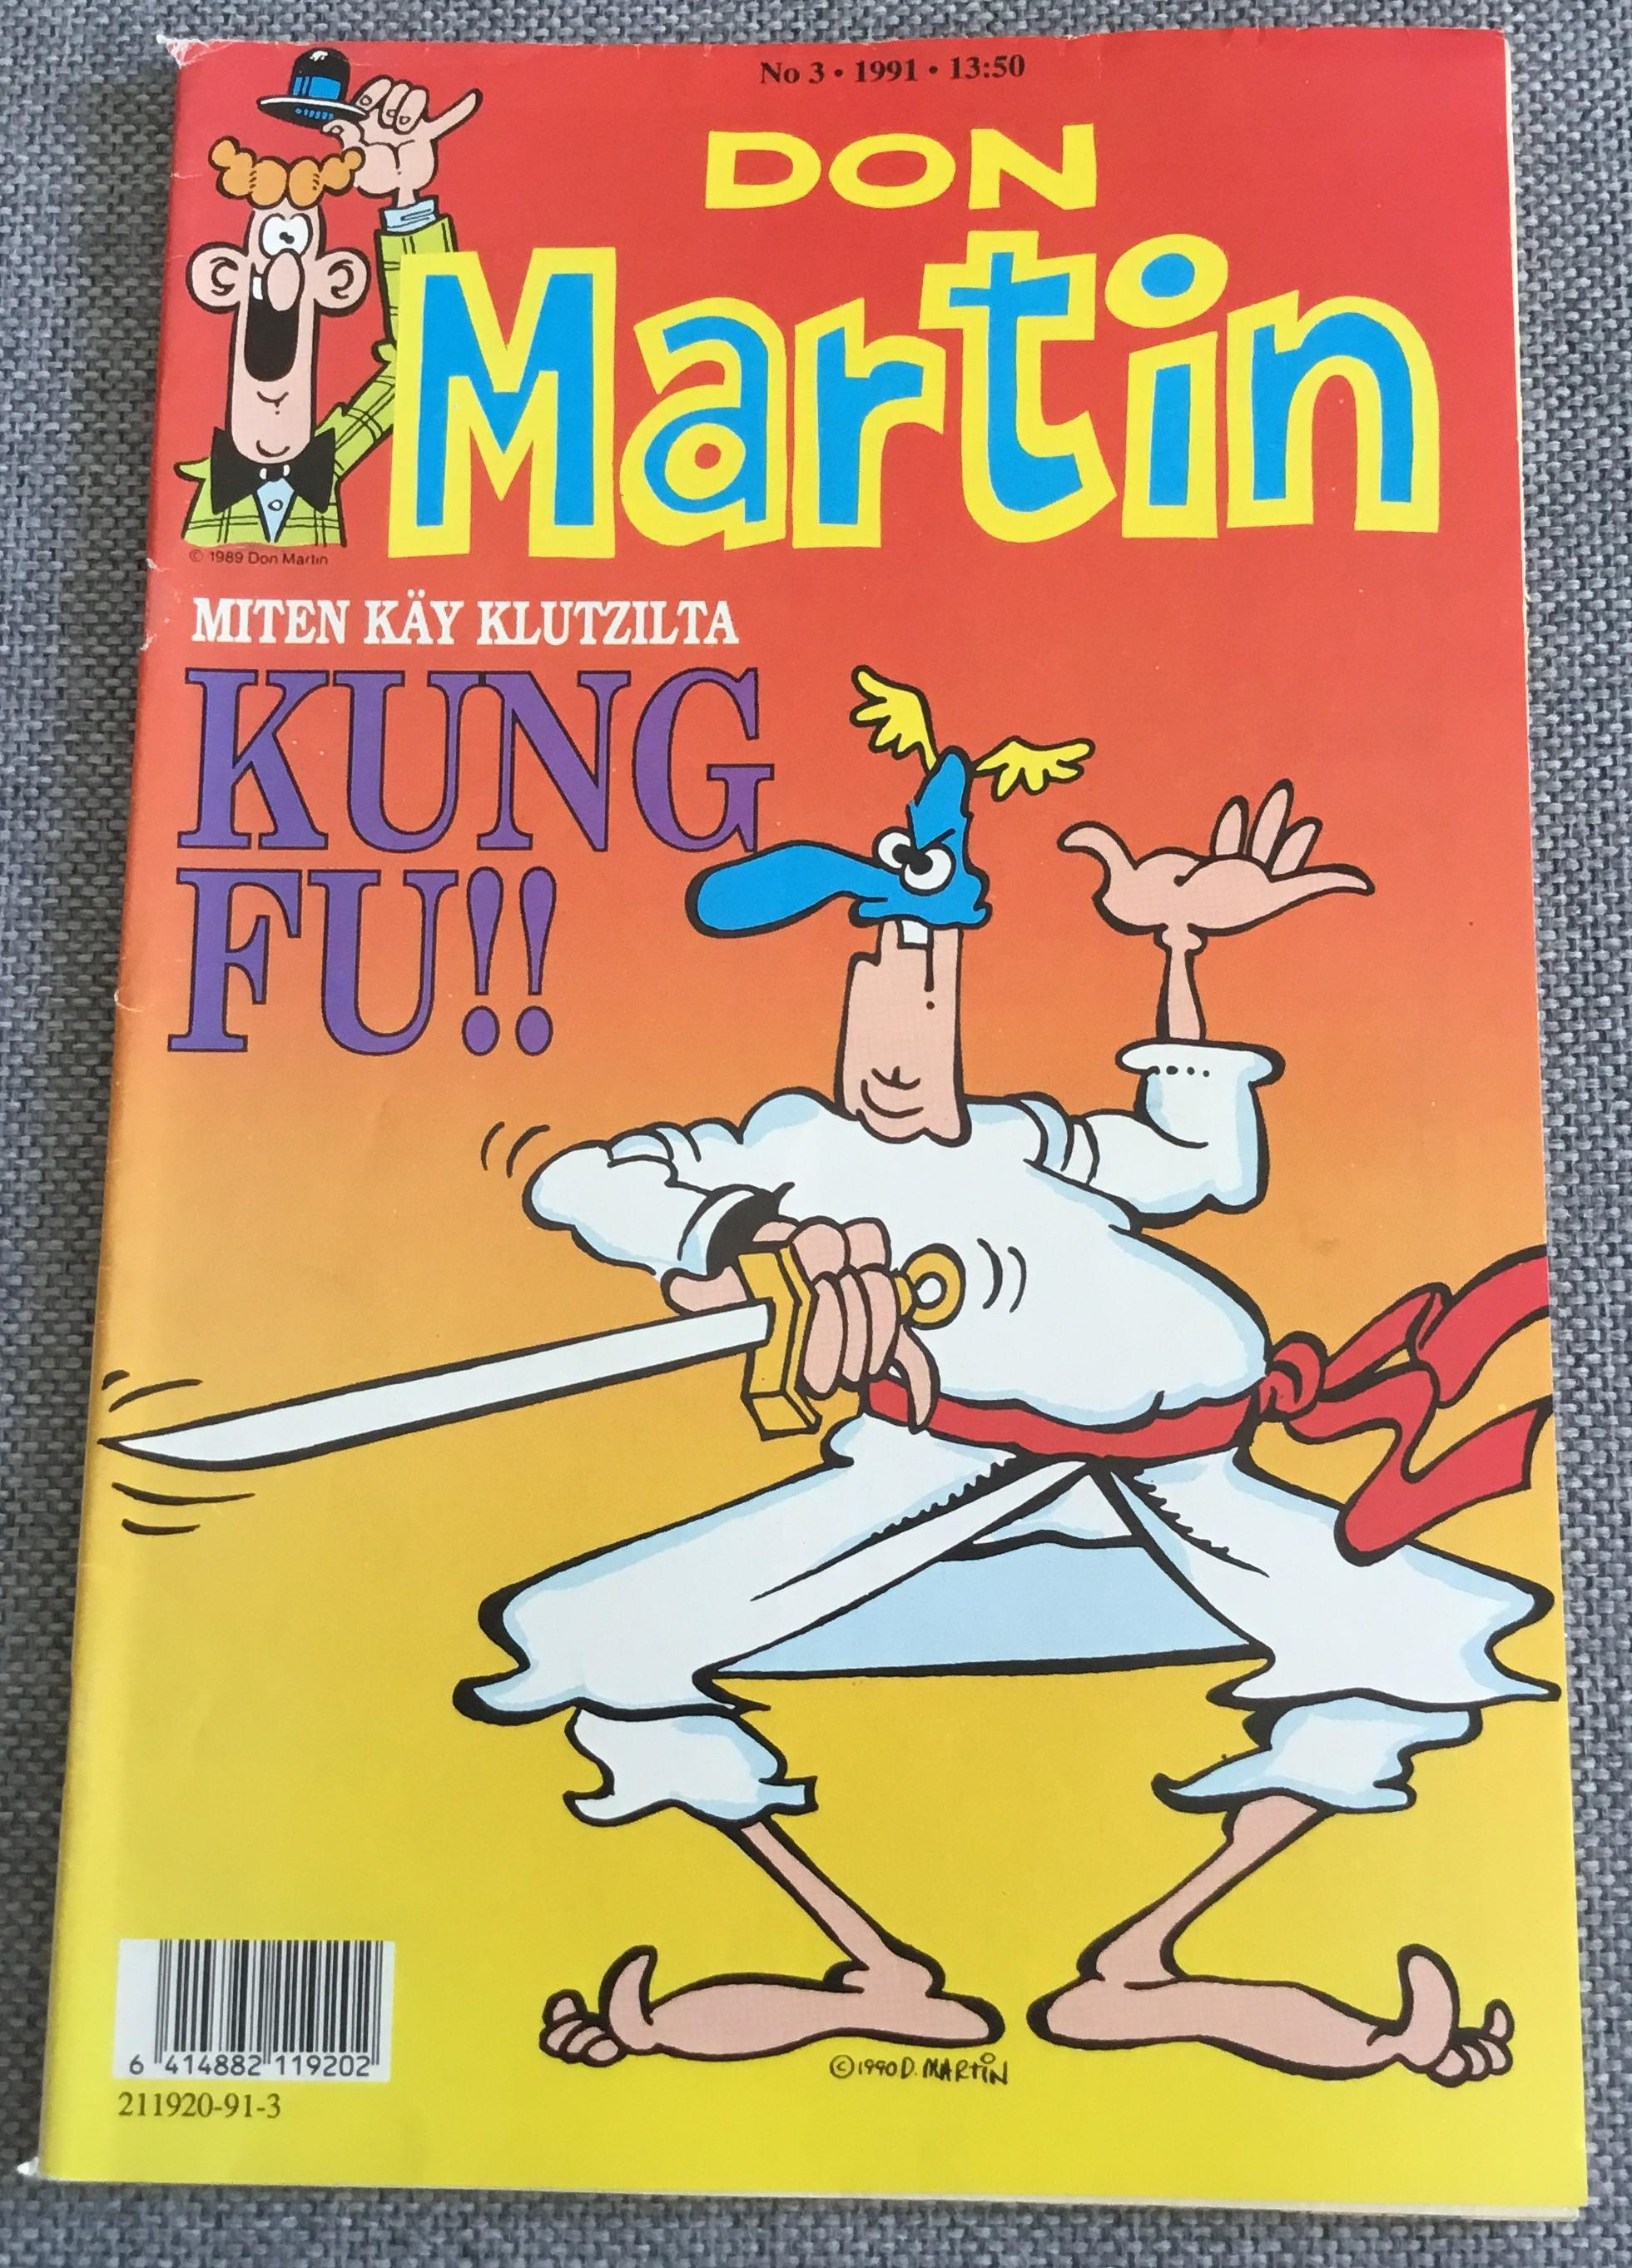 Finnish Don Martin Comic #3 • Finland